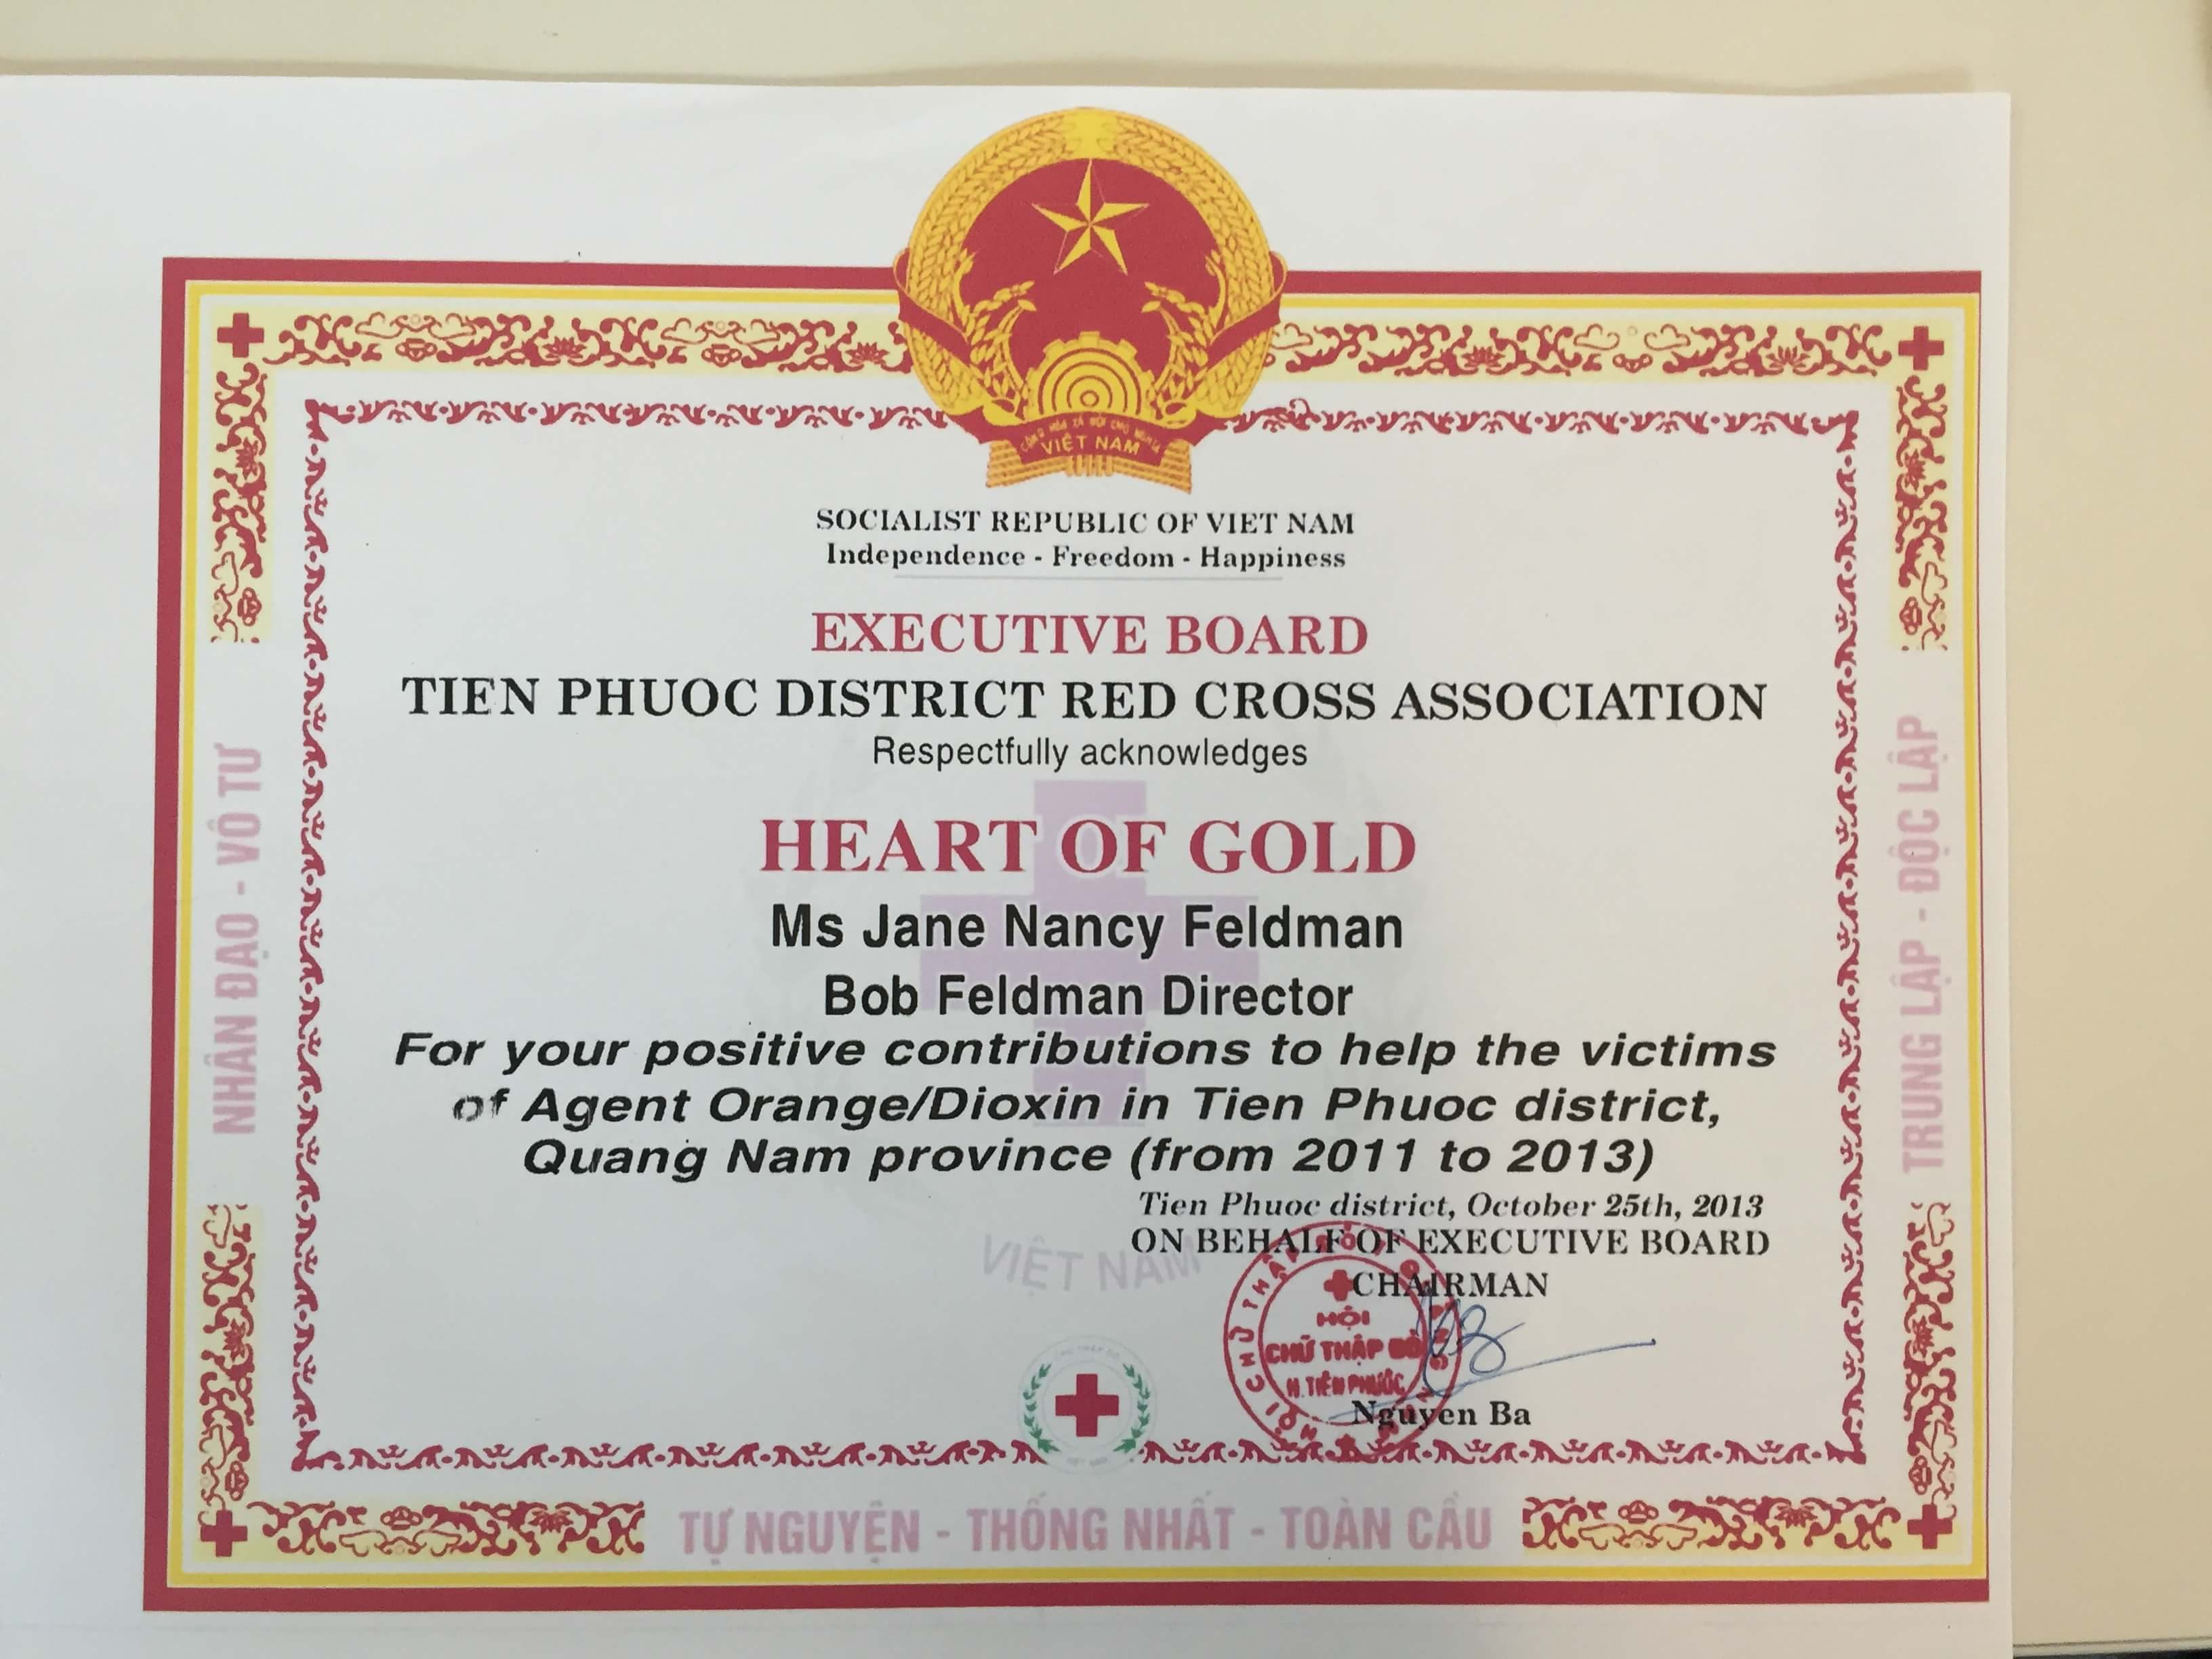 Award recognizing people for their work with Agent Orange victims